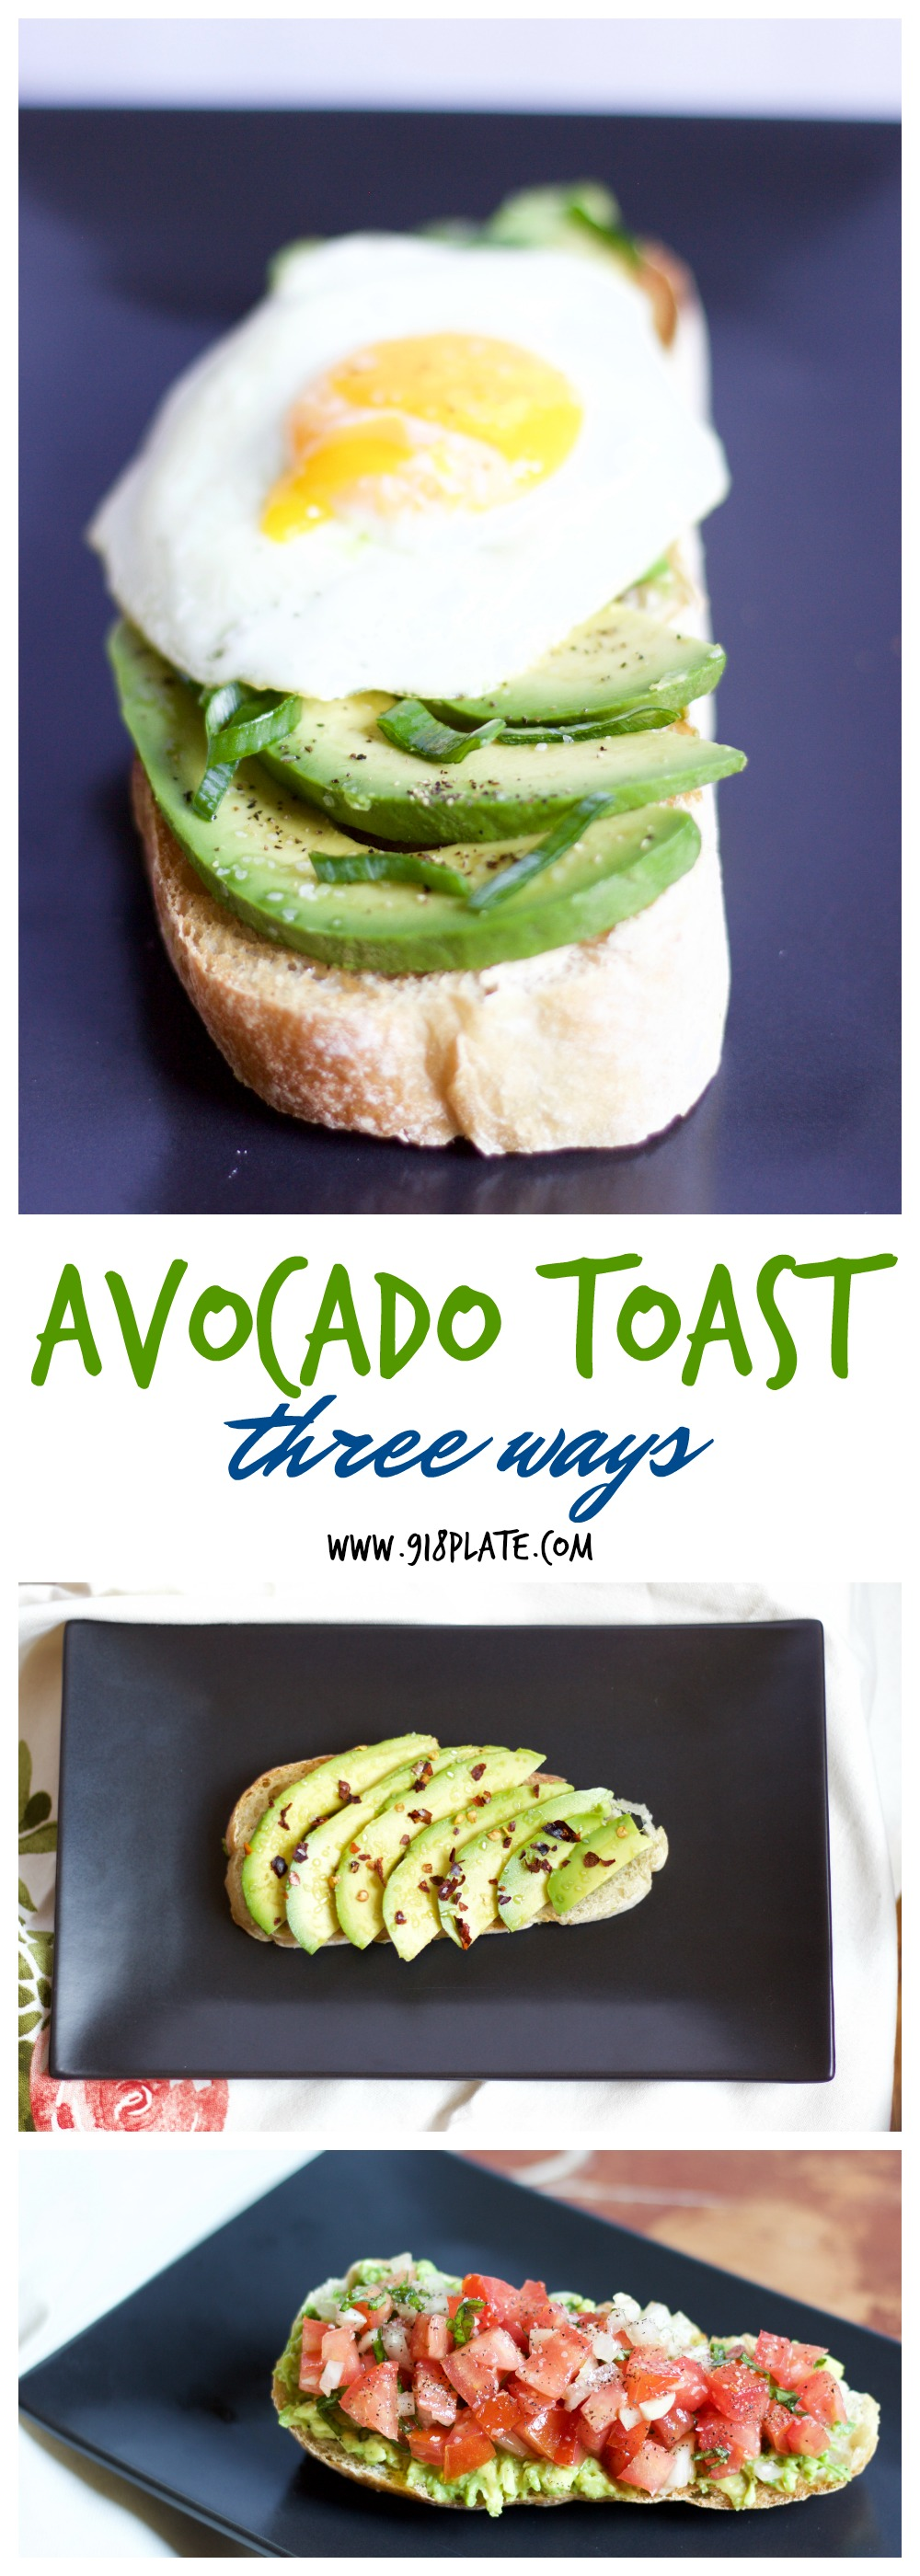 Feel like a millionaire with bruschetta avocado toast that you can make at home!